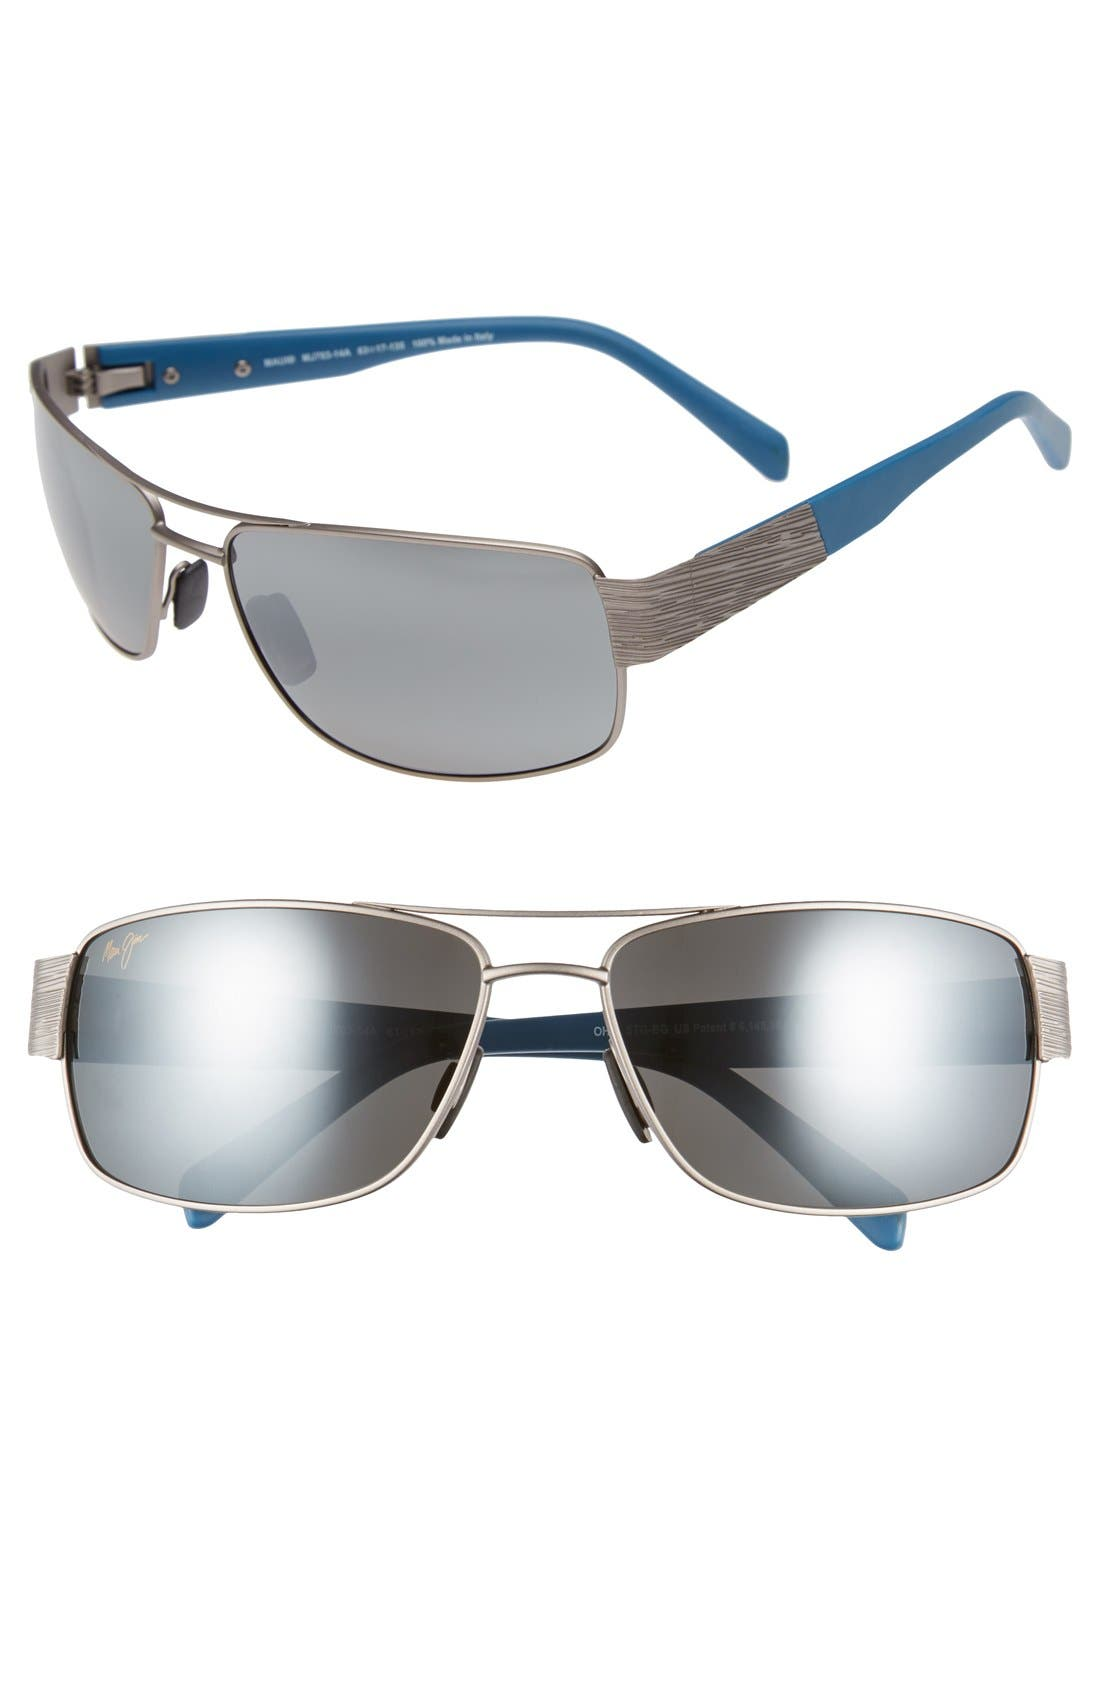 'Ohia' 64mm Polarized Sunglasses,                         Main,                         color, SATIN GREY WITH BLUE/GREY